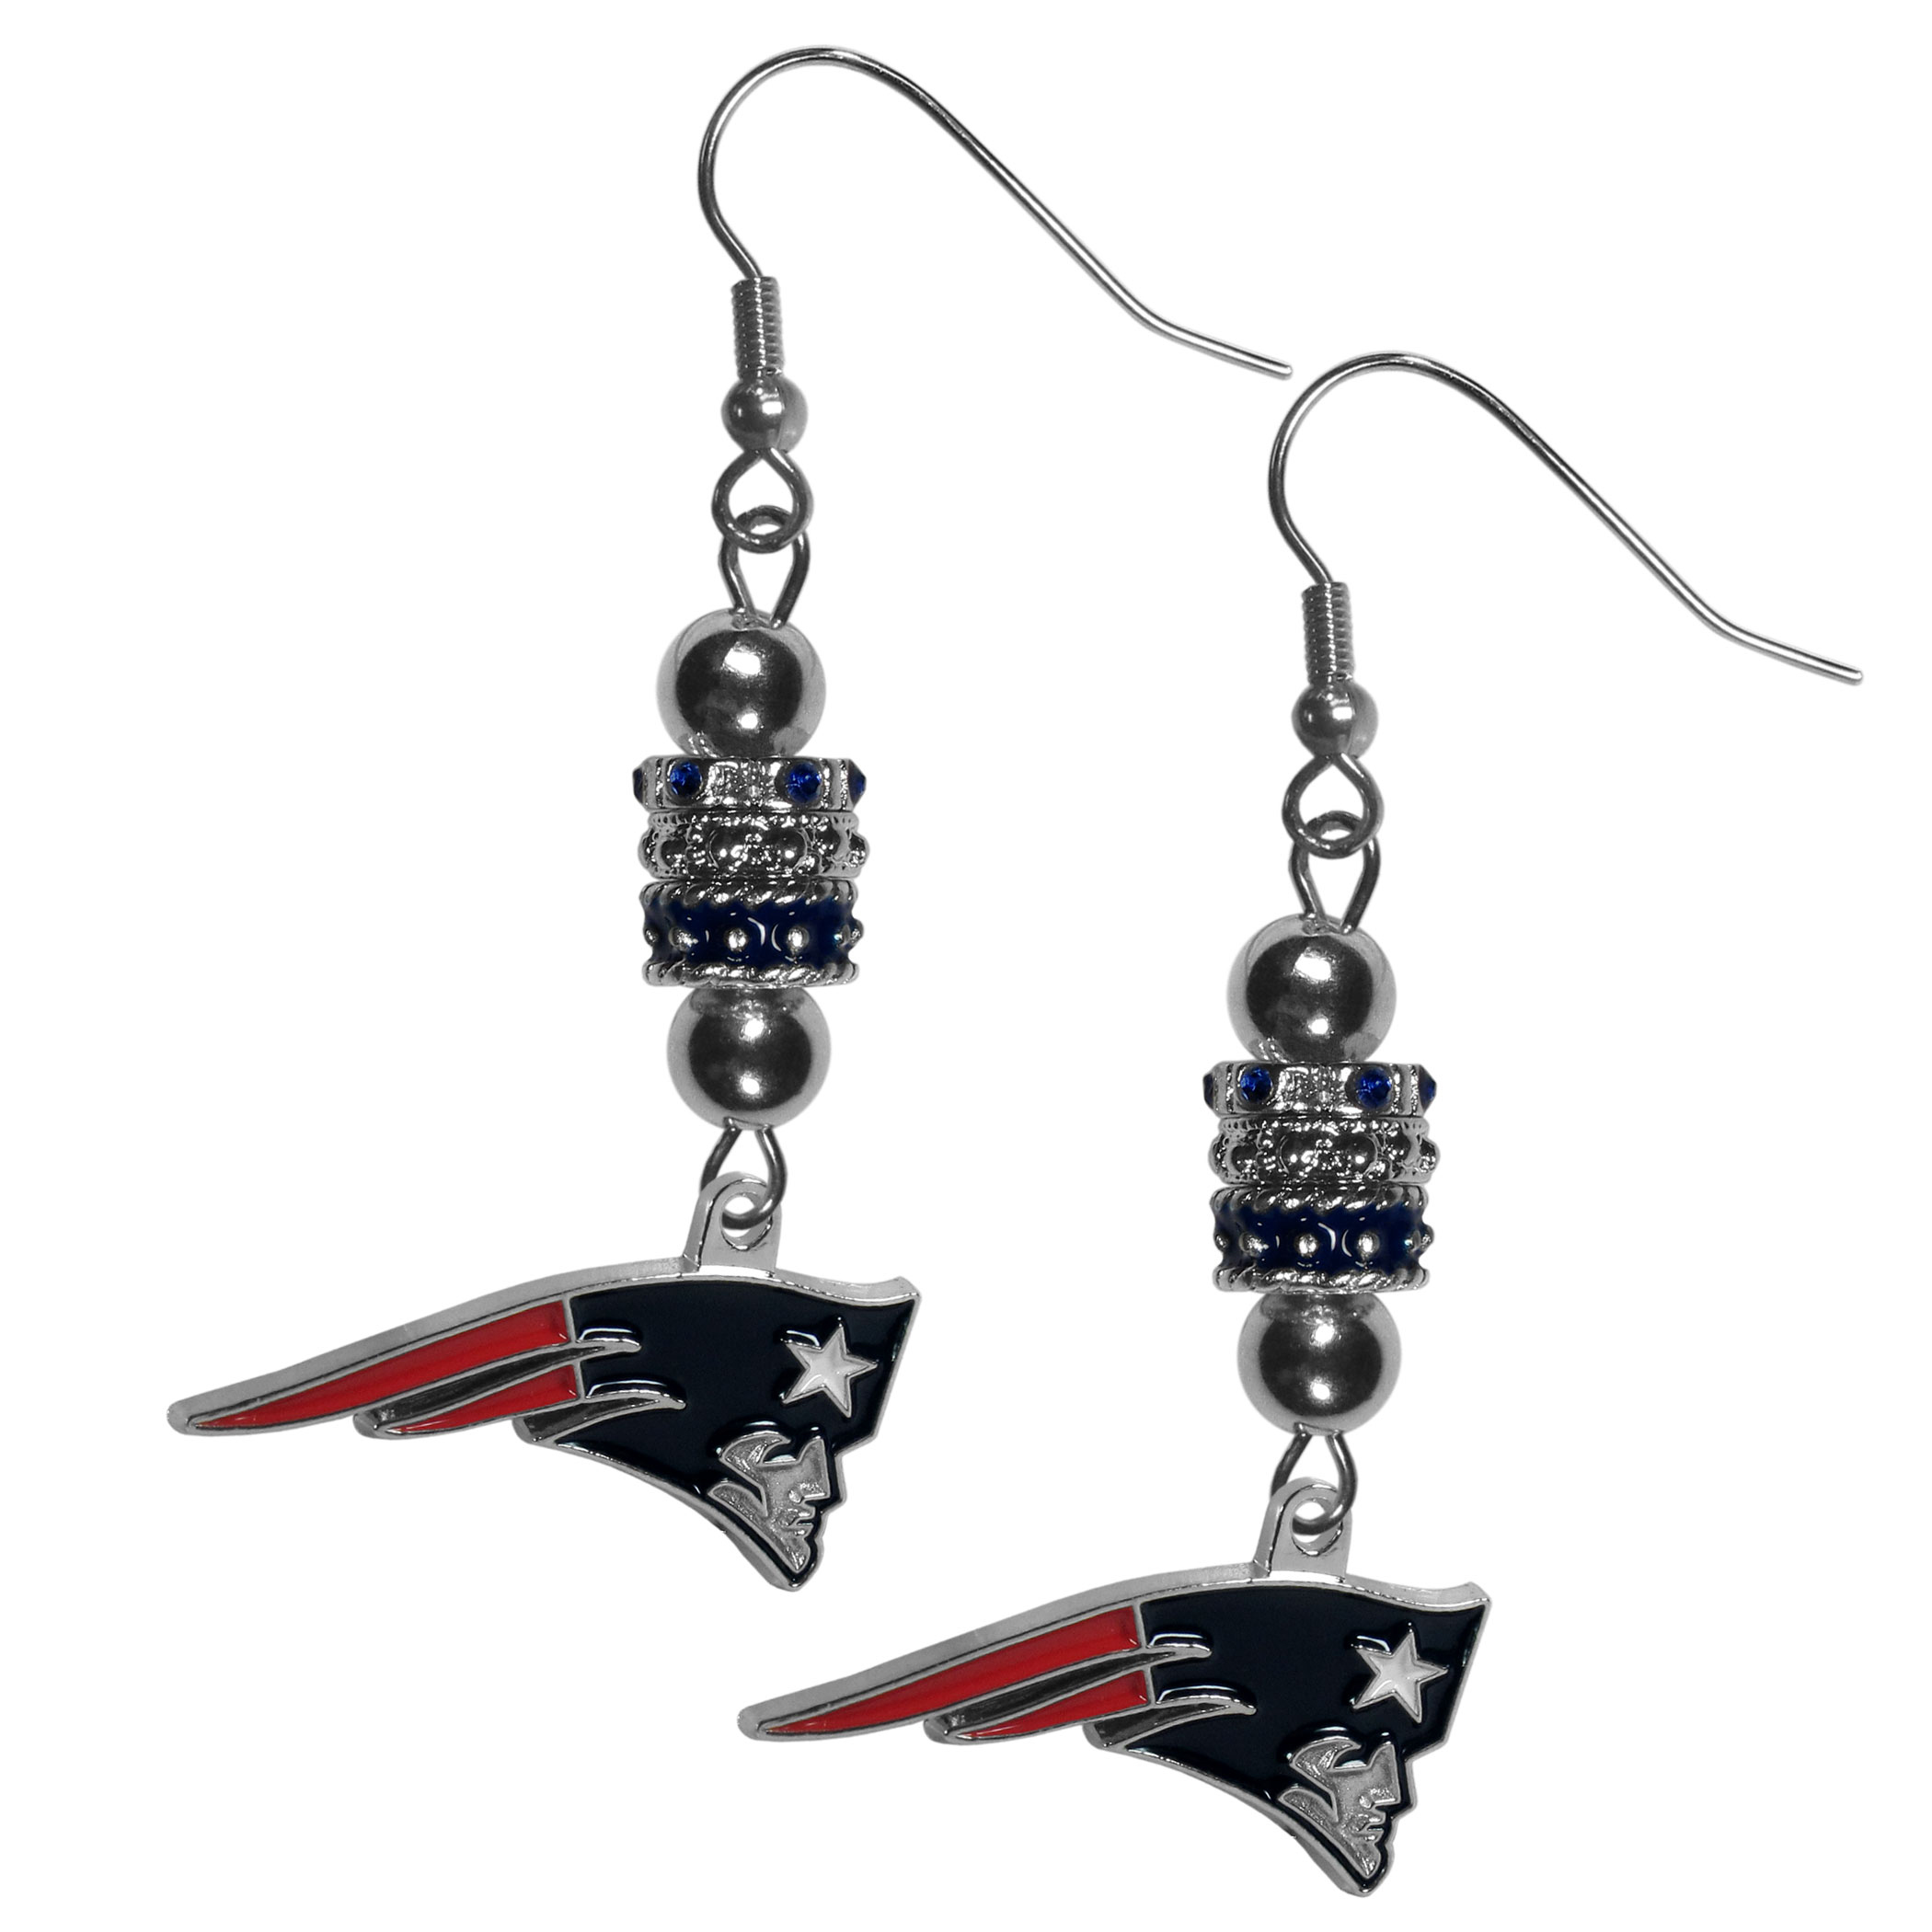 New England Patriots Euro Bead Earrings - These beautiful euro style earrings feature 3 euro beads and a detailed New England Patriots charm on hypoallergenic fishhook posts.